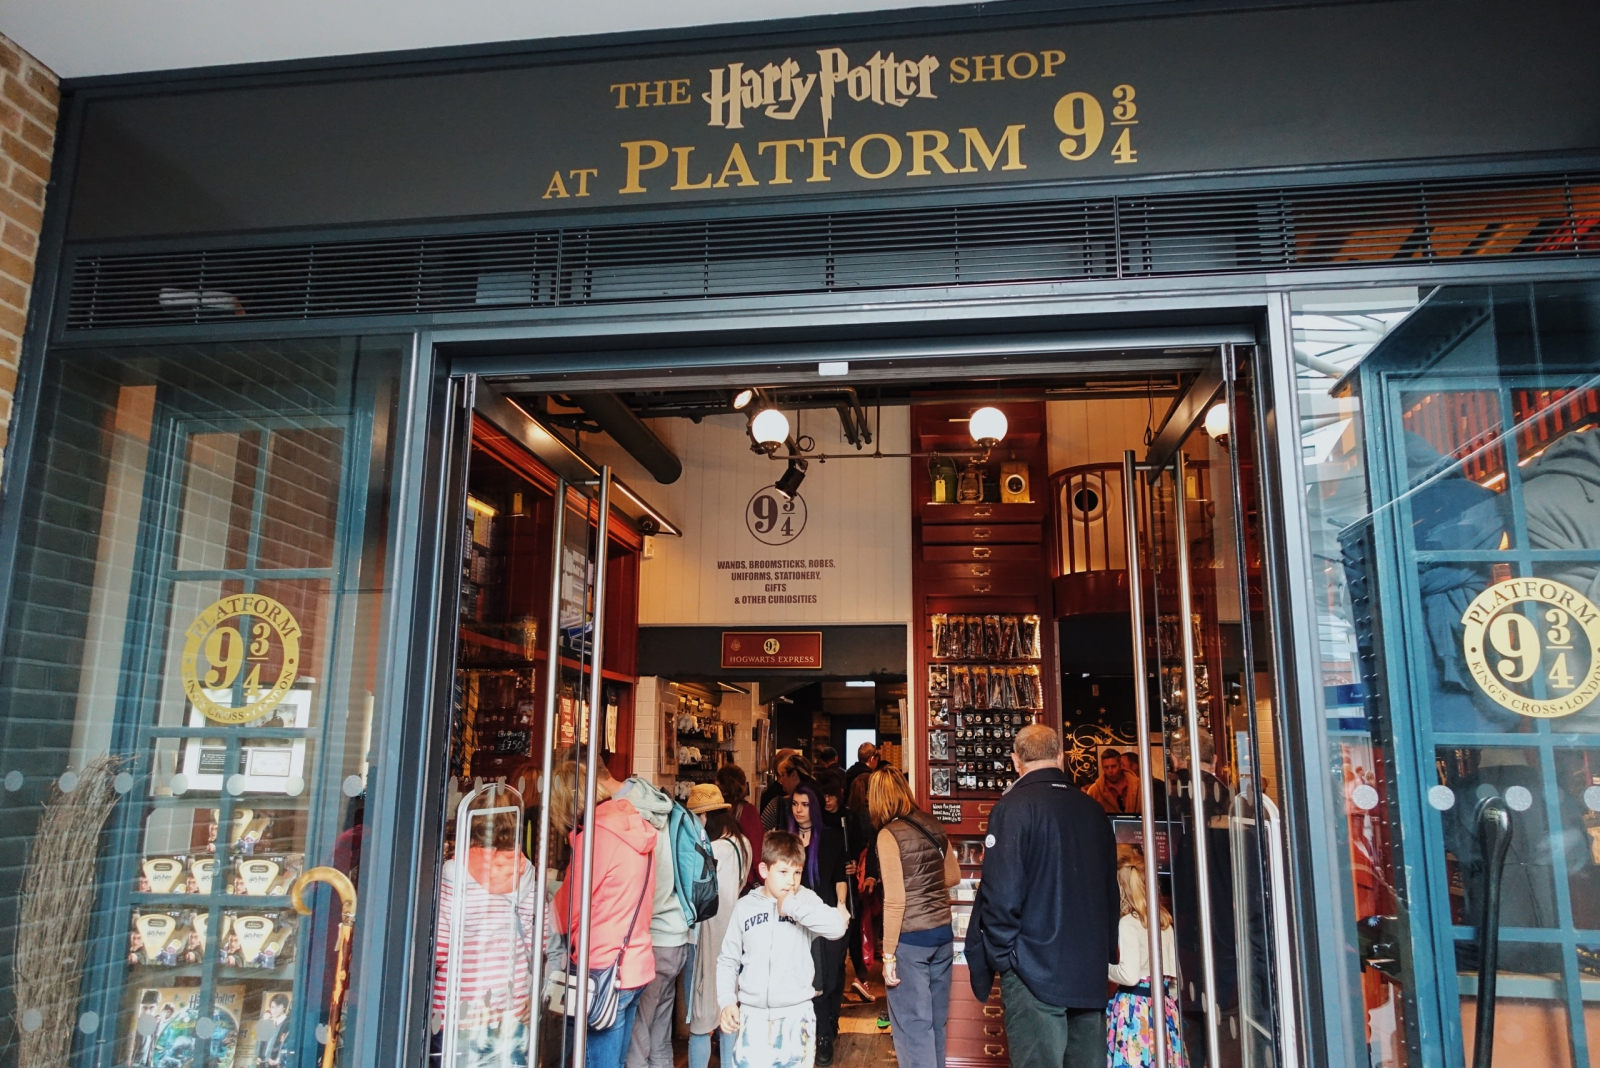 The Harry Potter Shop at Platform 9¾